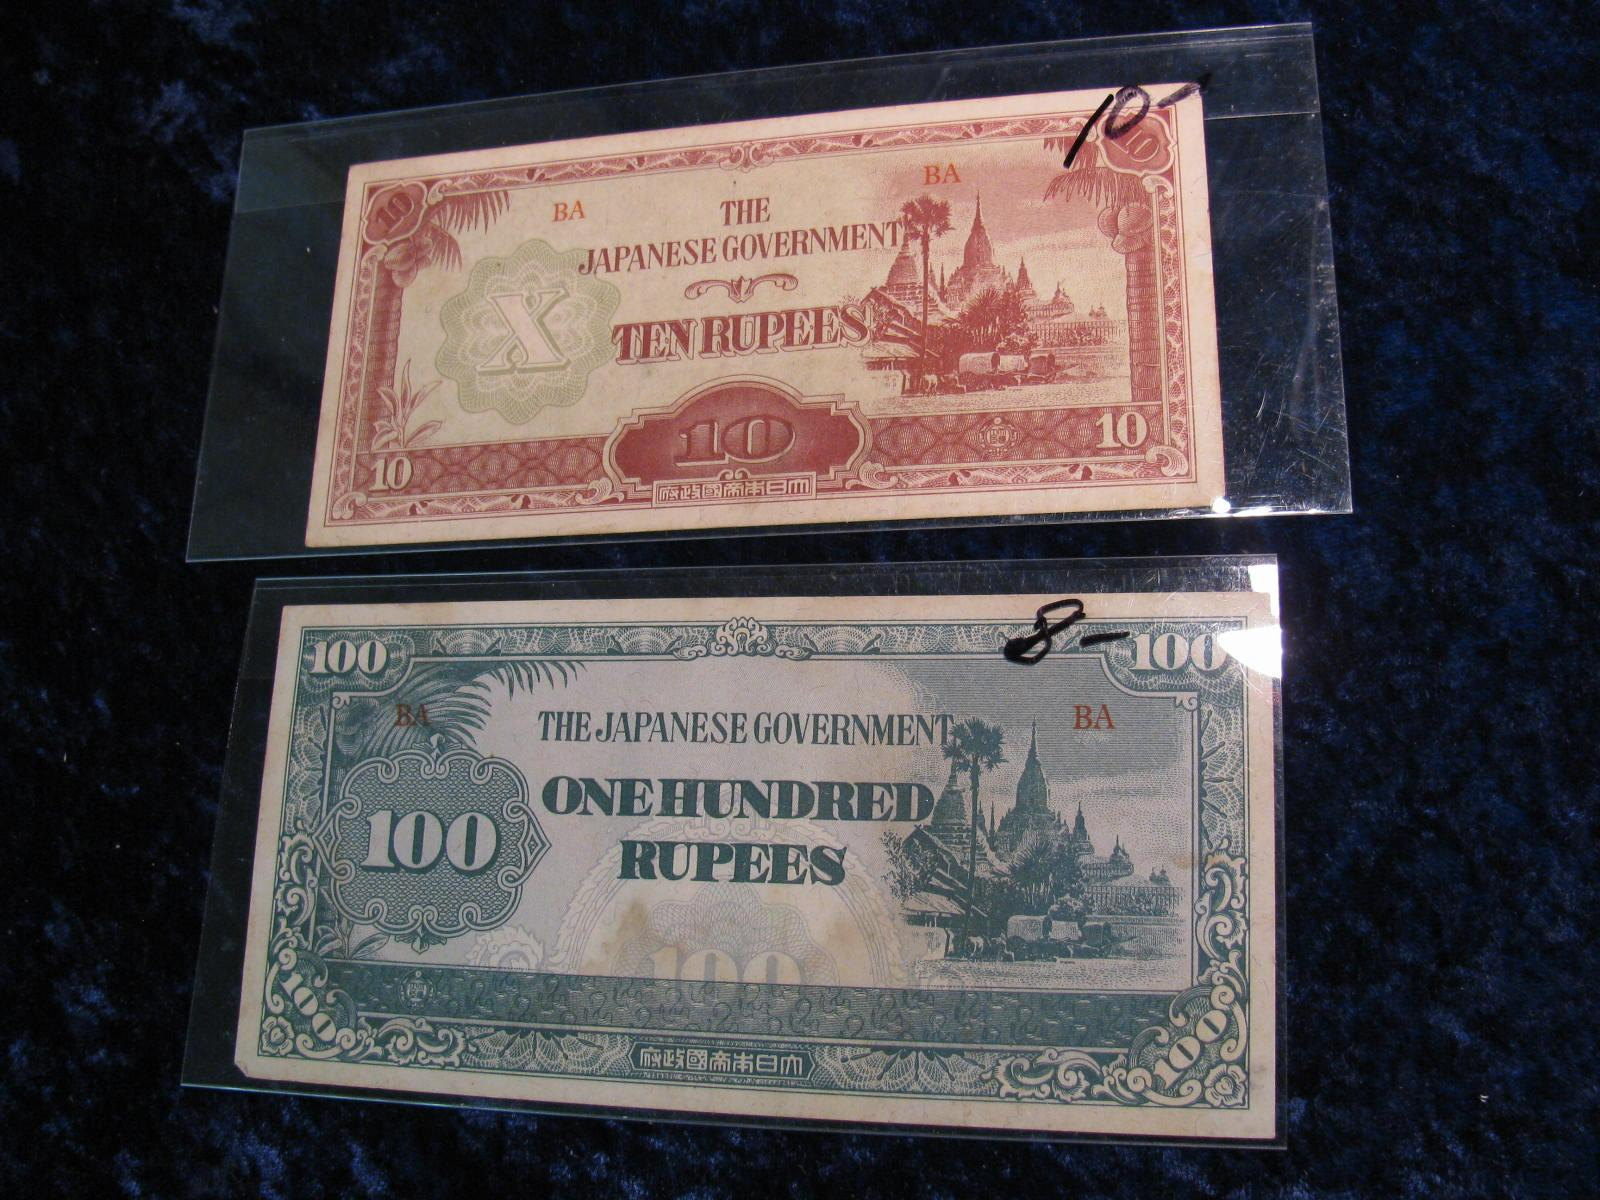 Image 1 : 2372. WWII Japanese Government 10, 100 Rupee Notes.